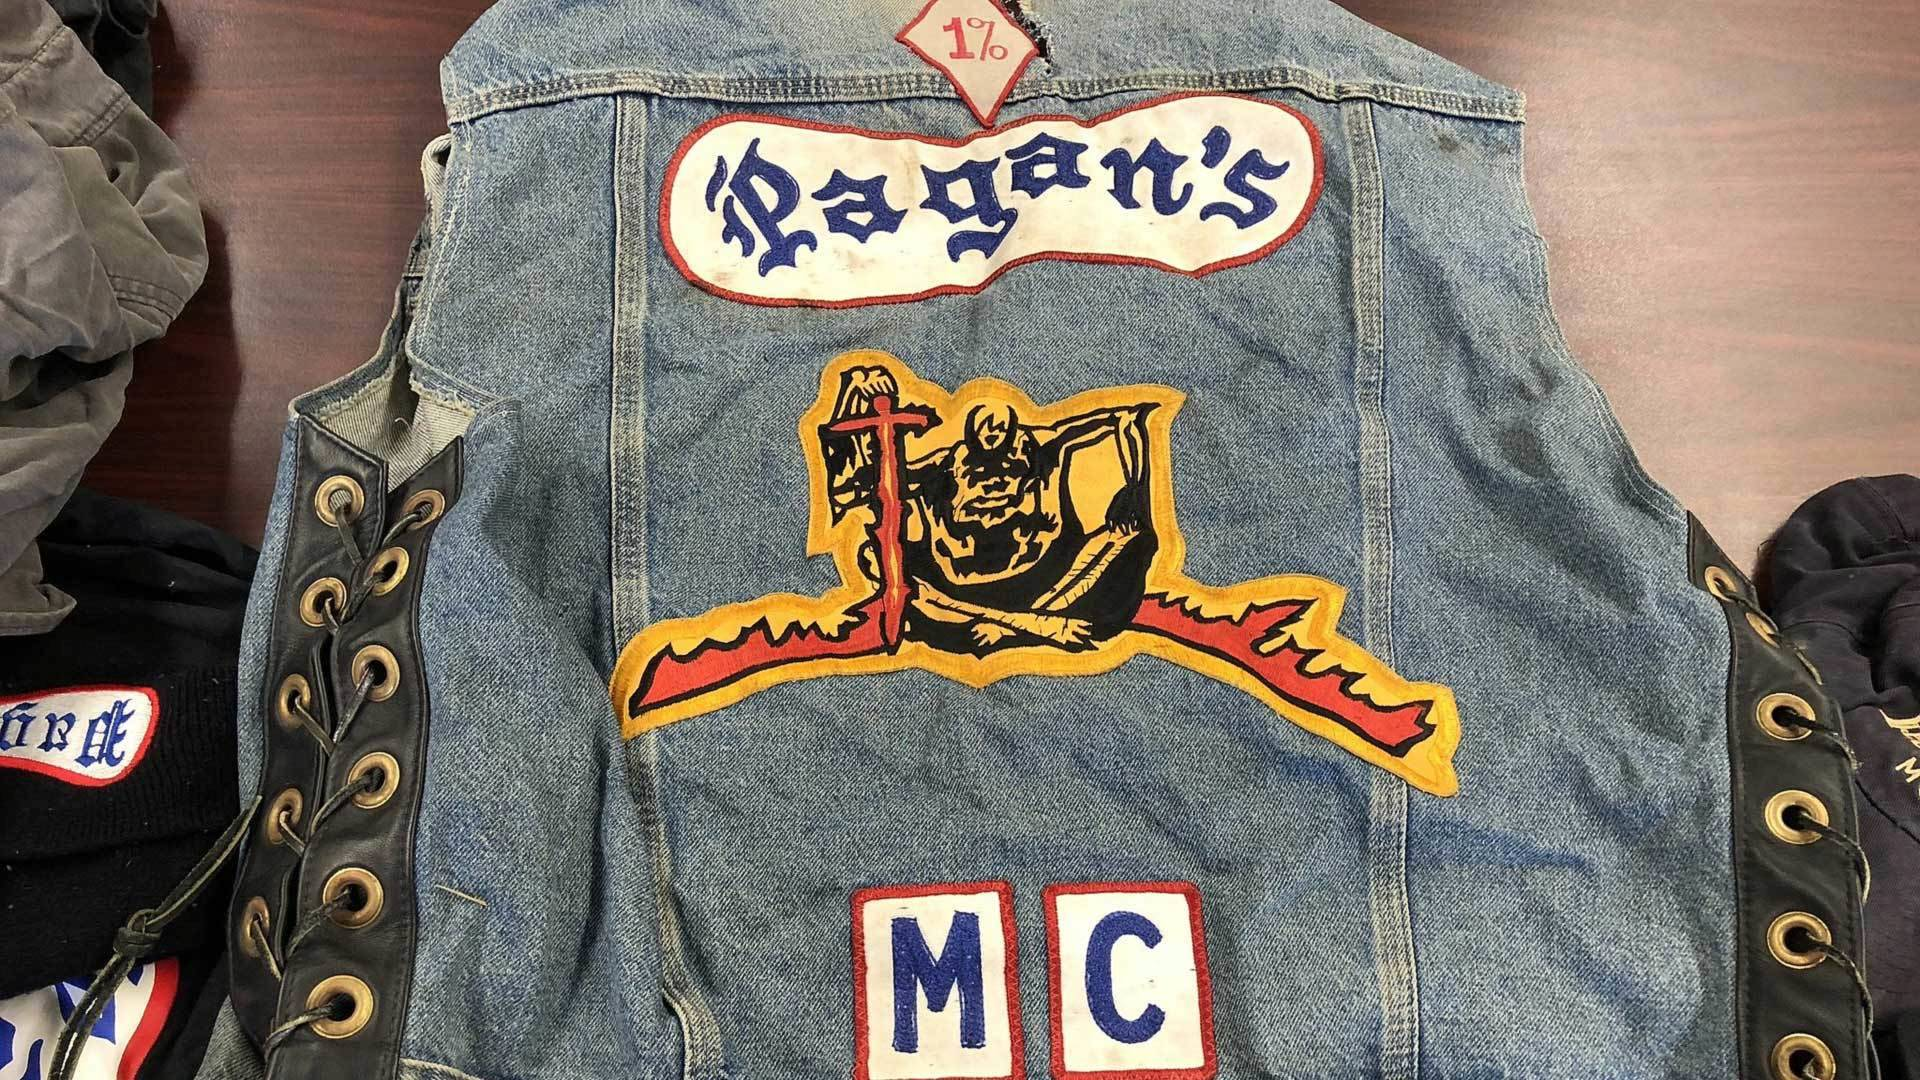 Pagan's MC Members Busted for Meth Distribution Conspiracy